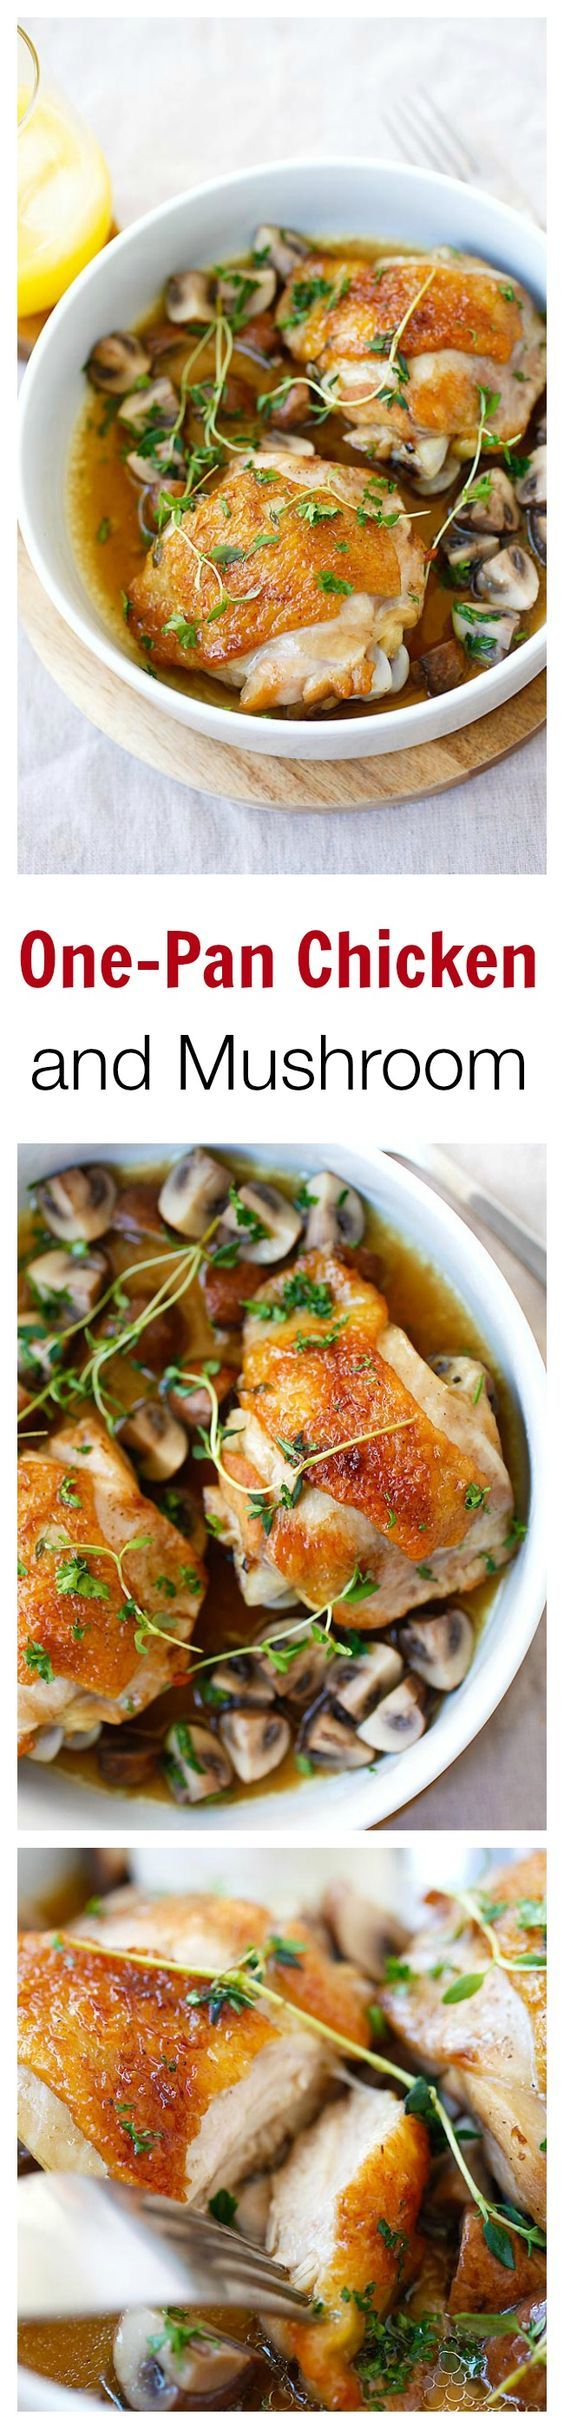 Chicken with Sauteed Mushroom – one-pan chicken with mushroom, all cooked in a pan with wine and chicken broth. So easy, delicious, and budget friendly | rasamalaysia.com